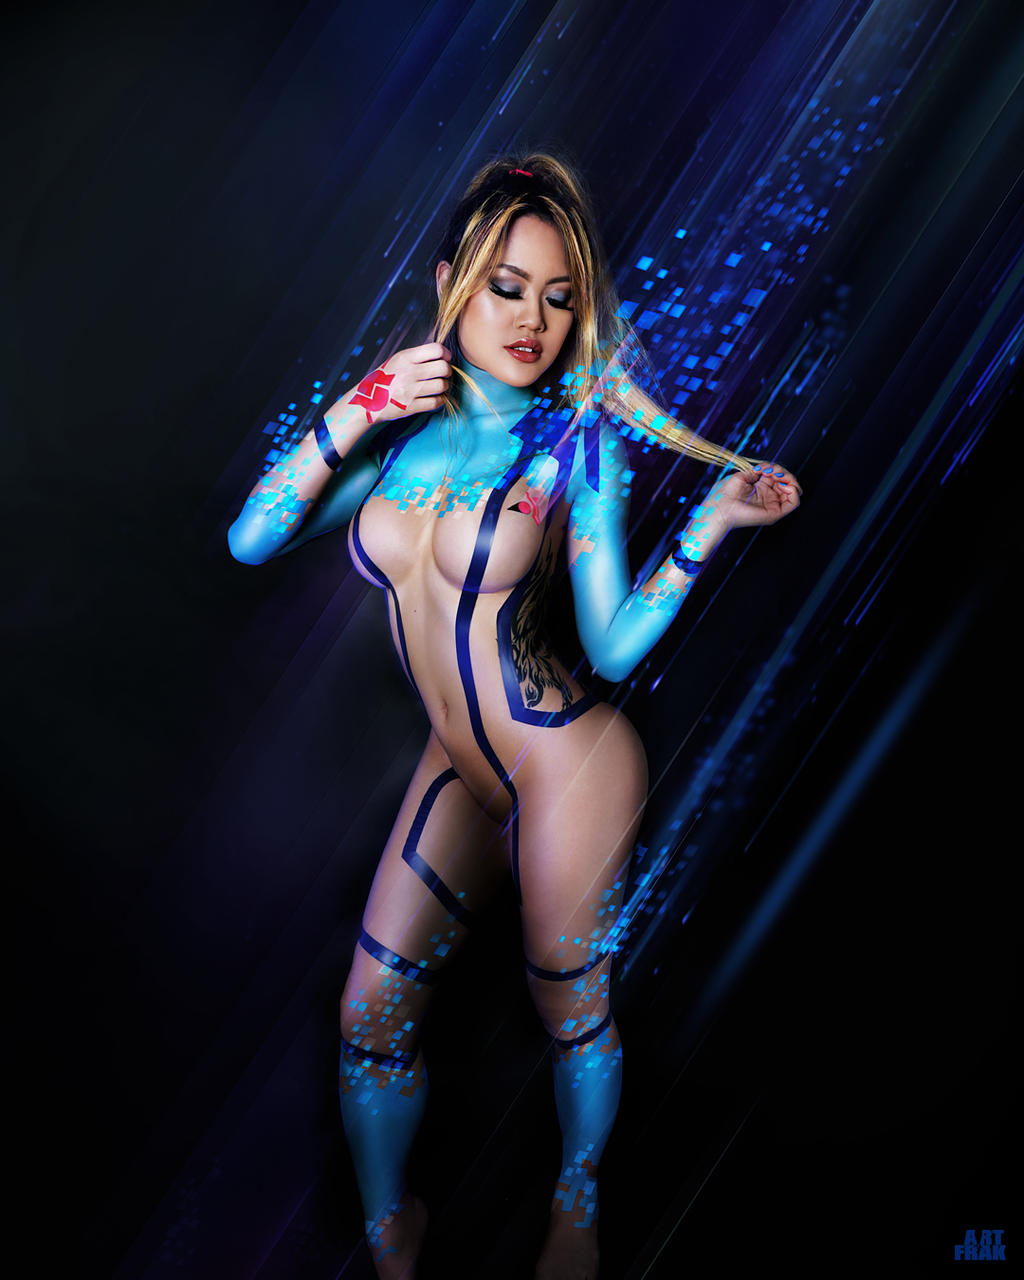 Sumas Zero Suit 3 - Electrical tape outfit design by ArtFrak